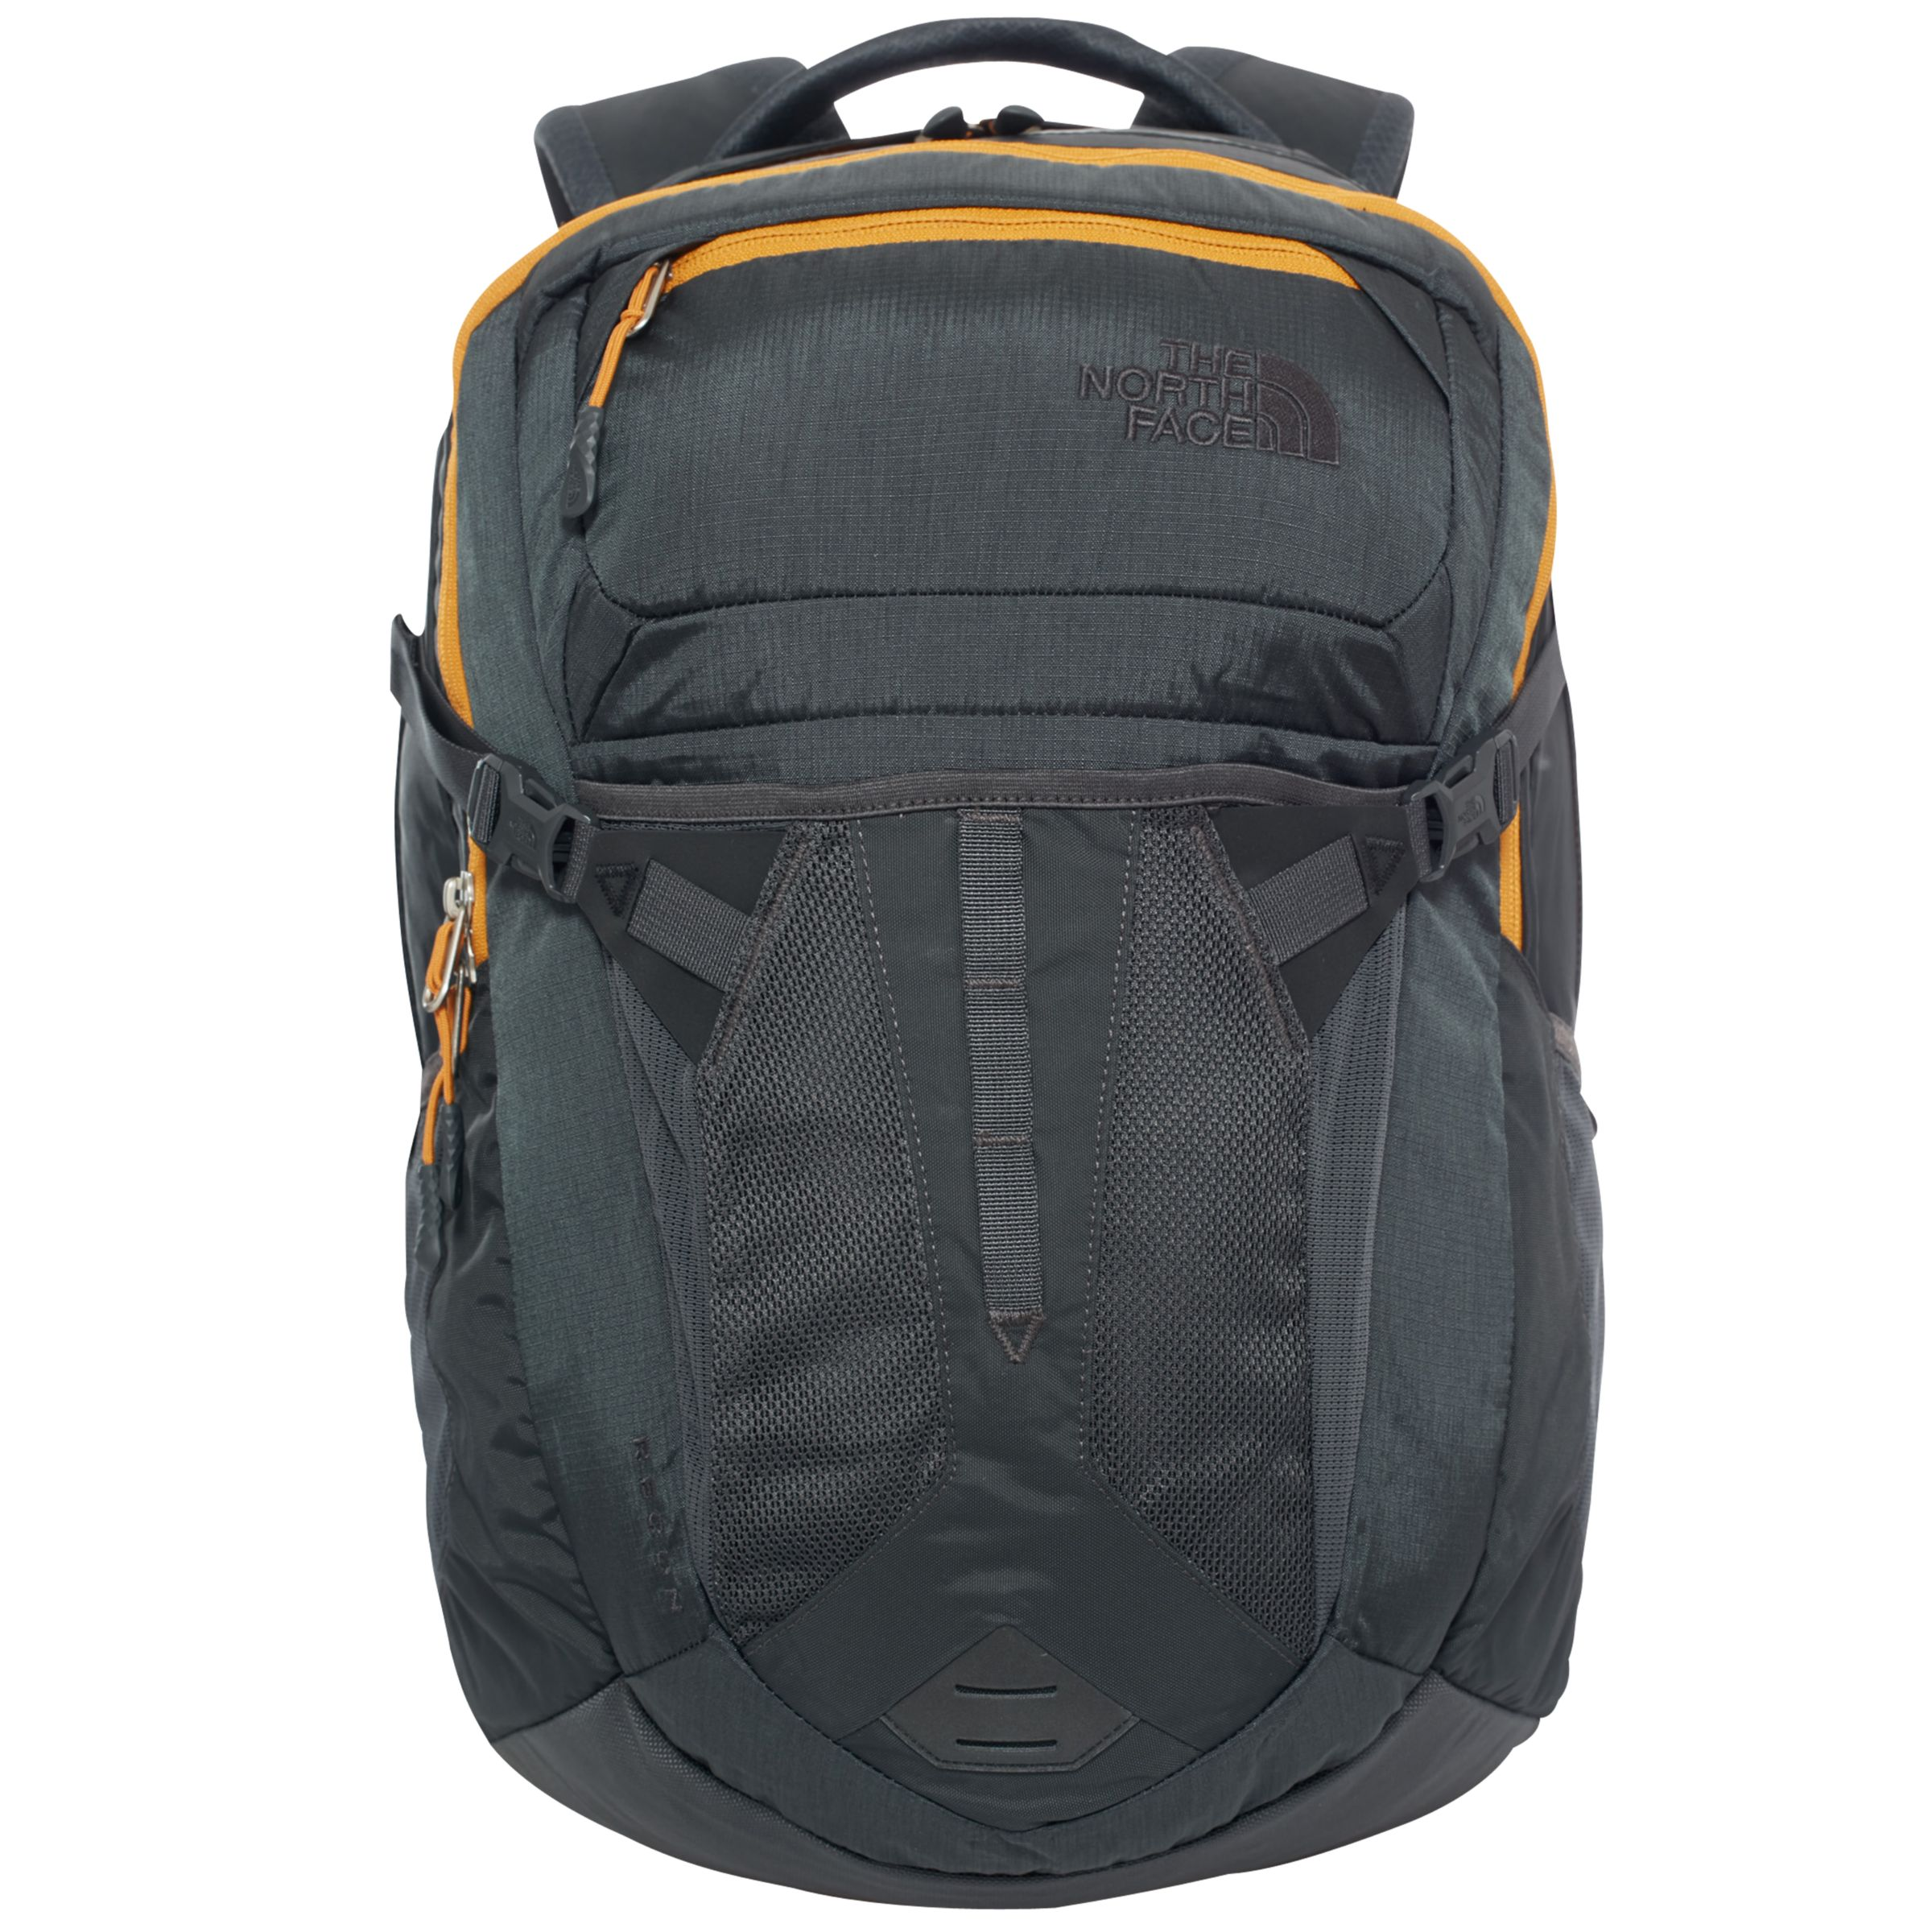 d14657acb The North Face Recon Backpack, Grey/Yellow at John Lewis & Partners